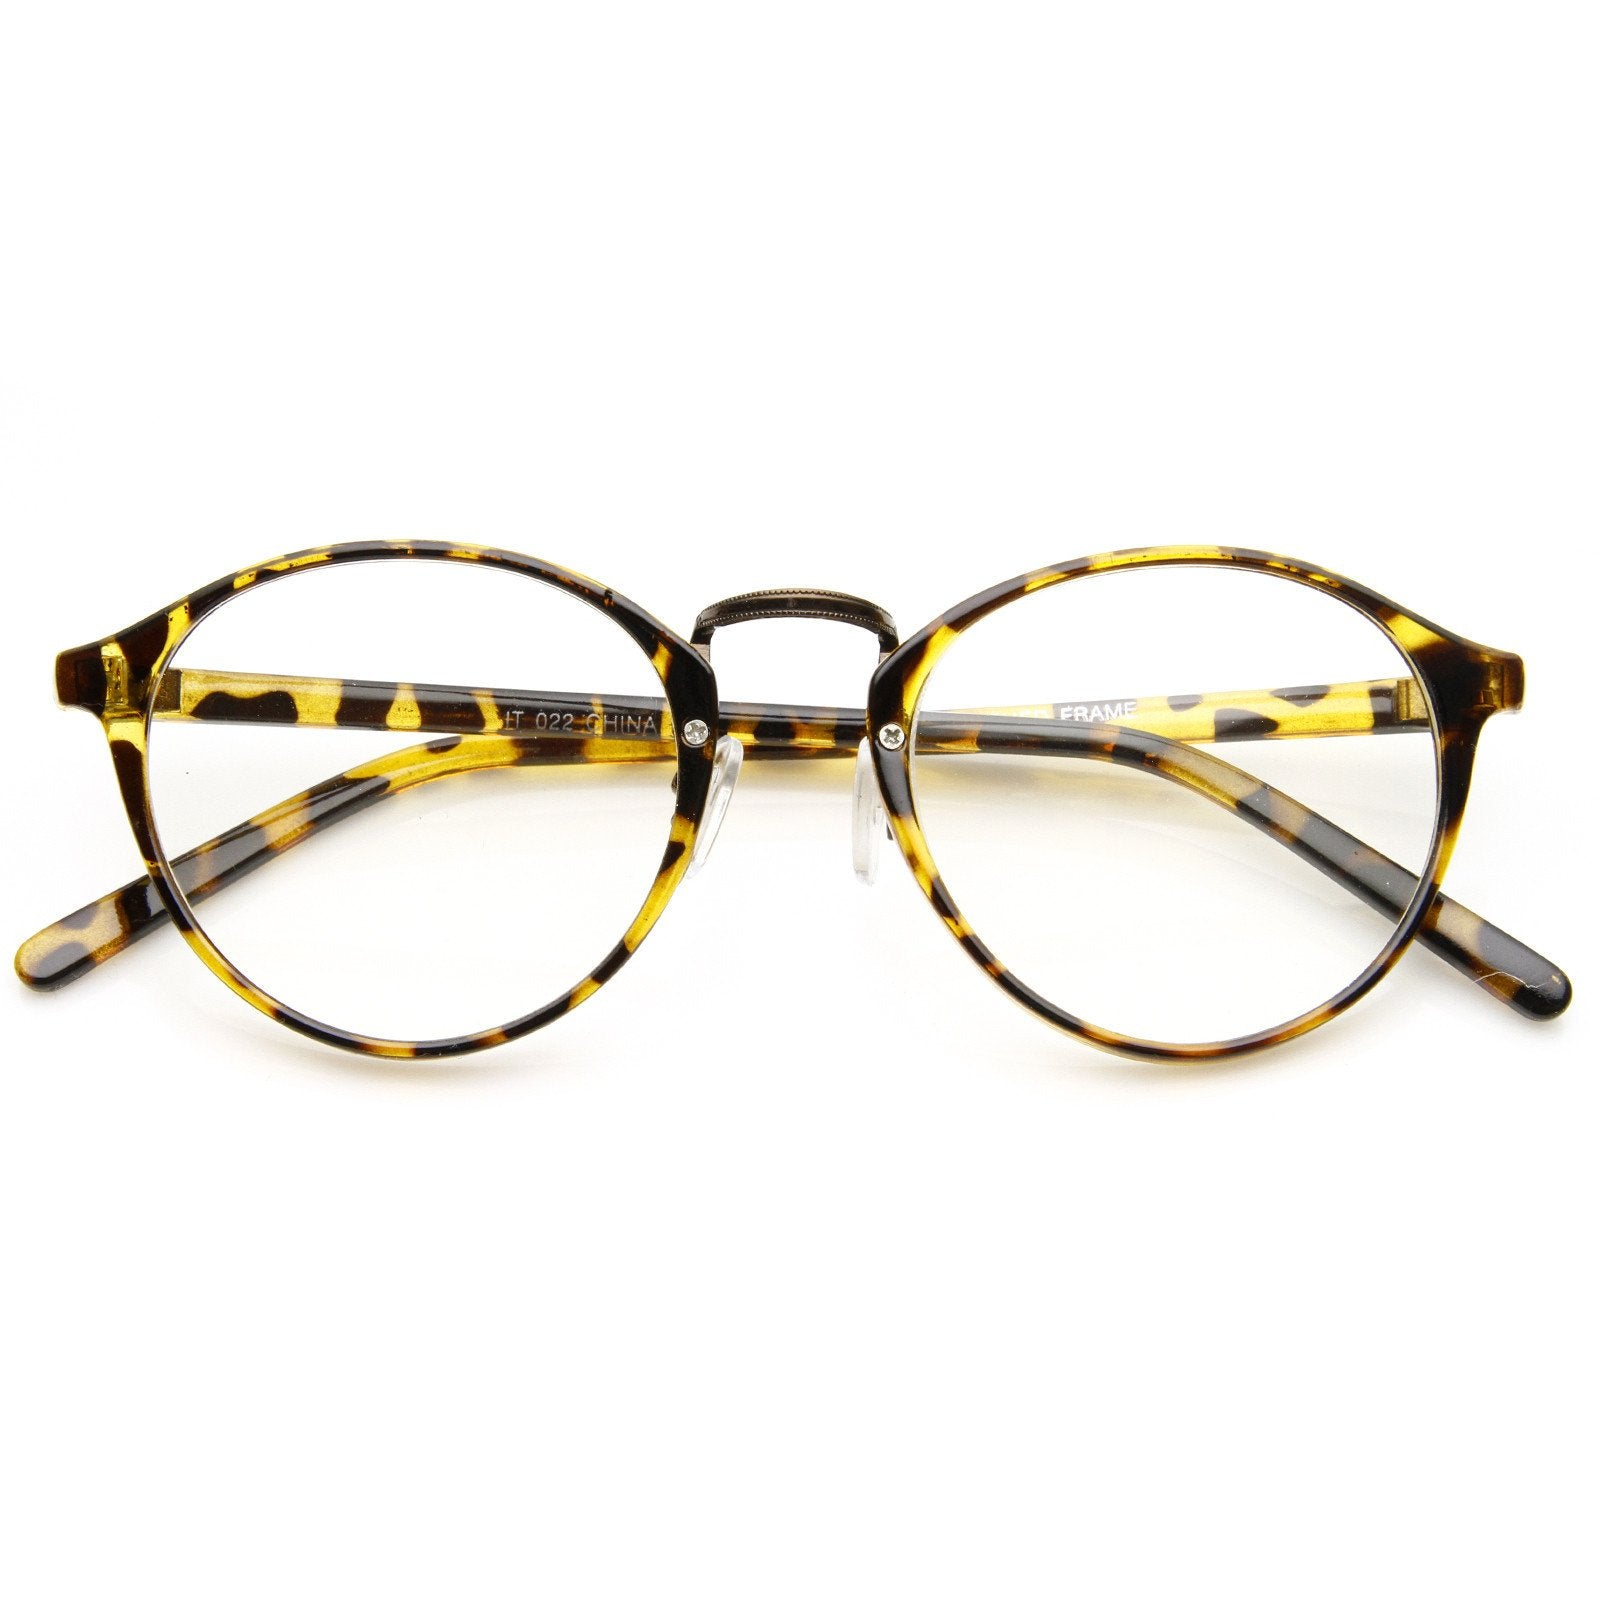 0905948be0 ... Vintage Dapper Indie Fashion Clear Lens Round Glasses 8768 · Tortoise